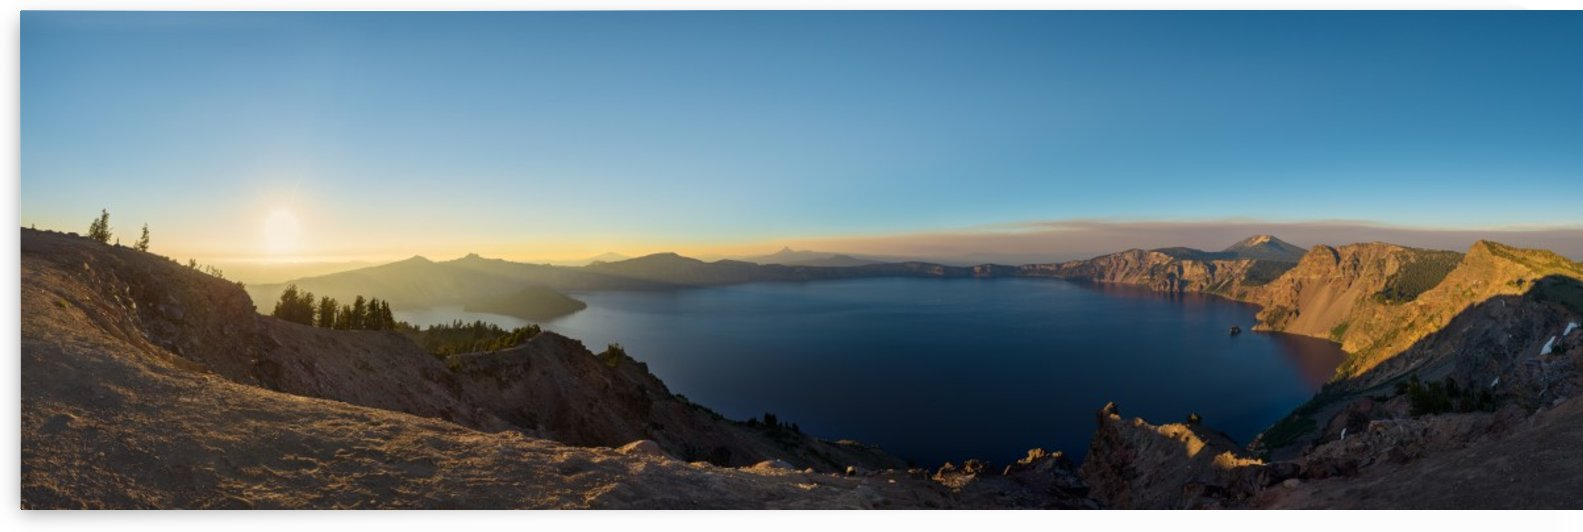 Panorama of Crater Lake National Park at sunset by Em Campos